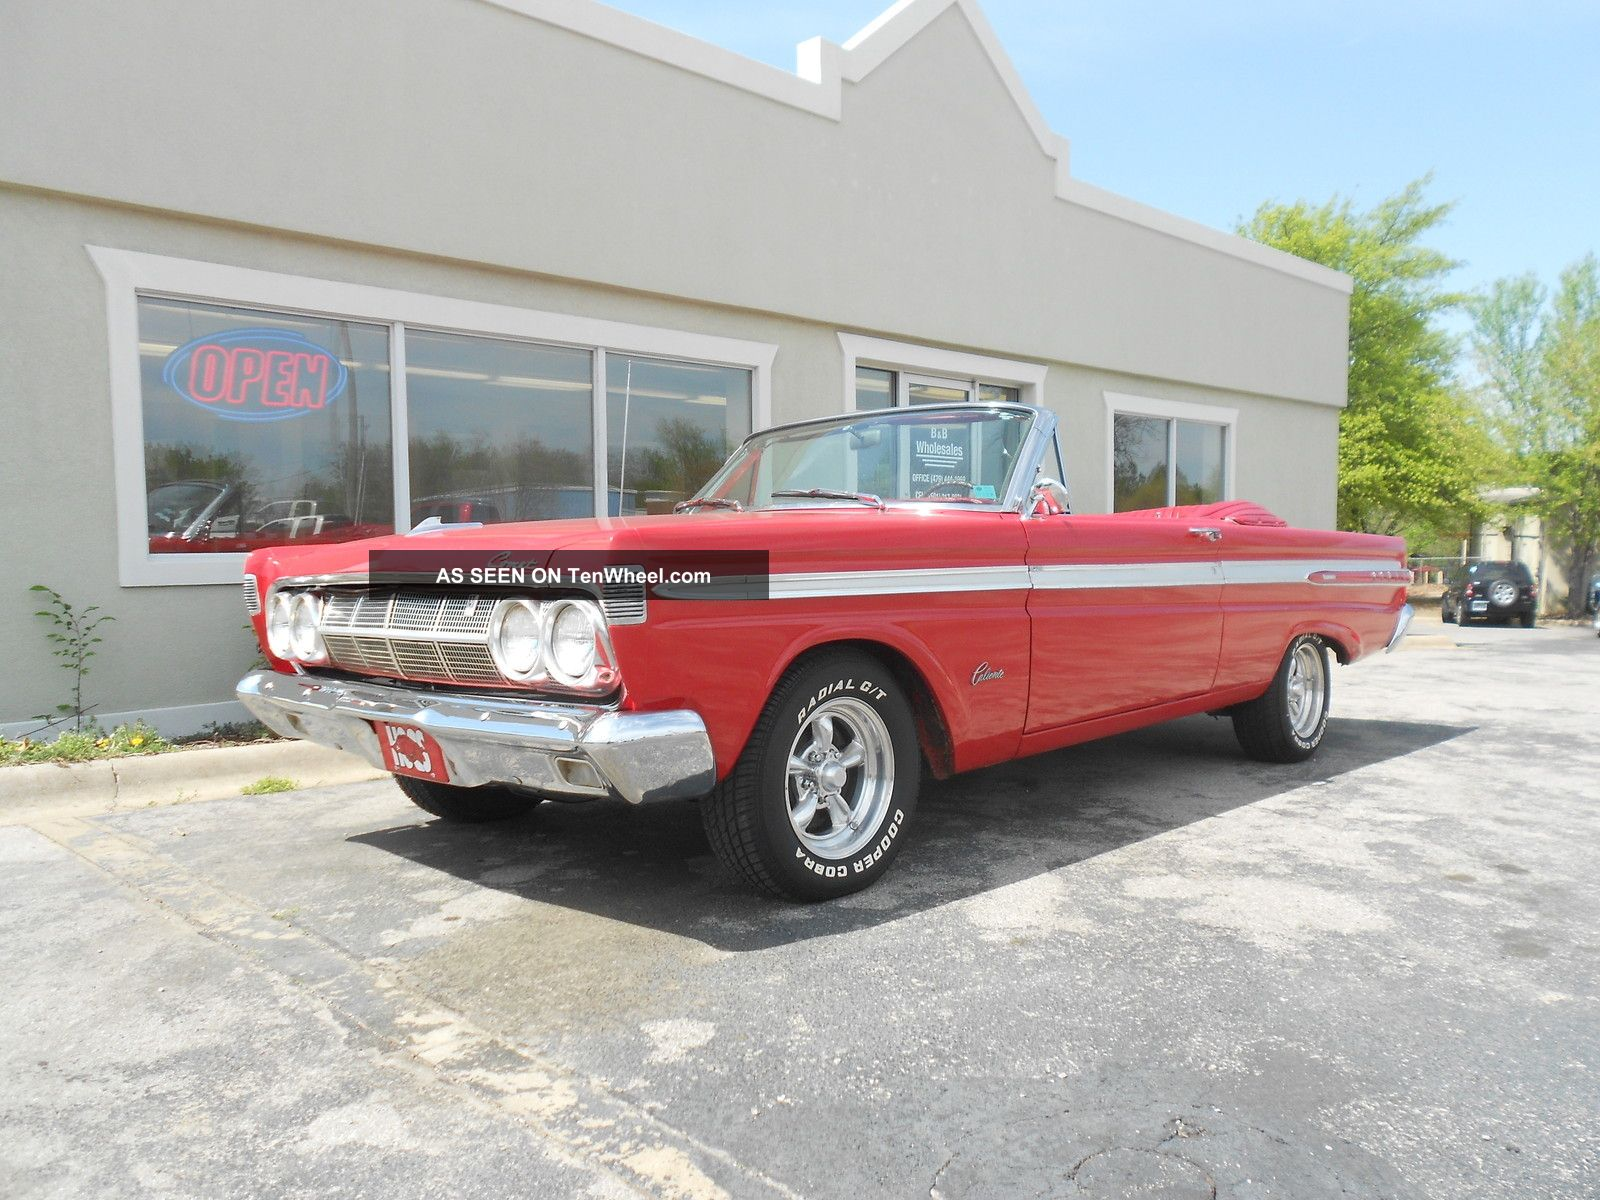 1964 Mercury Comet Caliente Convertible Comet photo